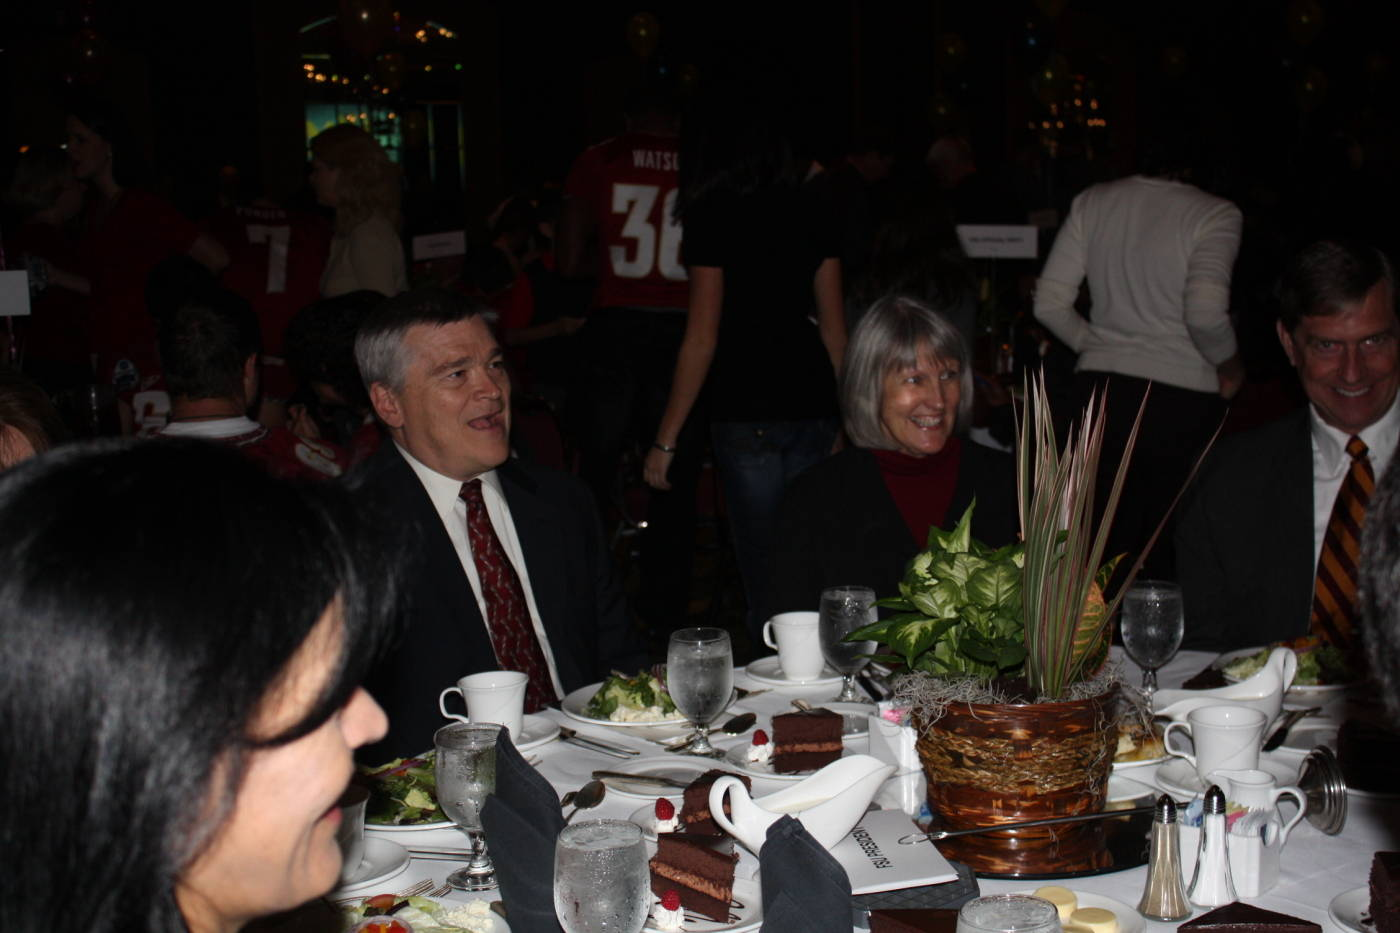 Newly appointed FSU president Dr. Eric J. Barron and wife Molly (seated to his left) at the Gator Bowl Luncheon and Hall of Fame Induction.